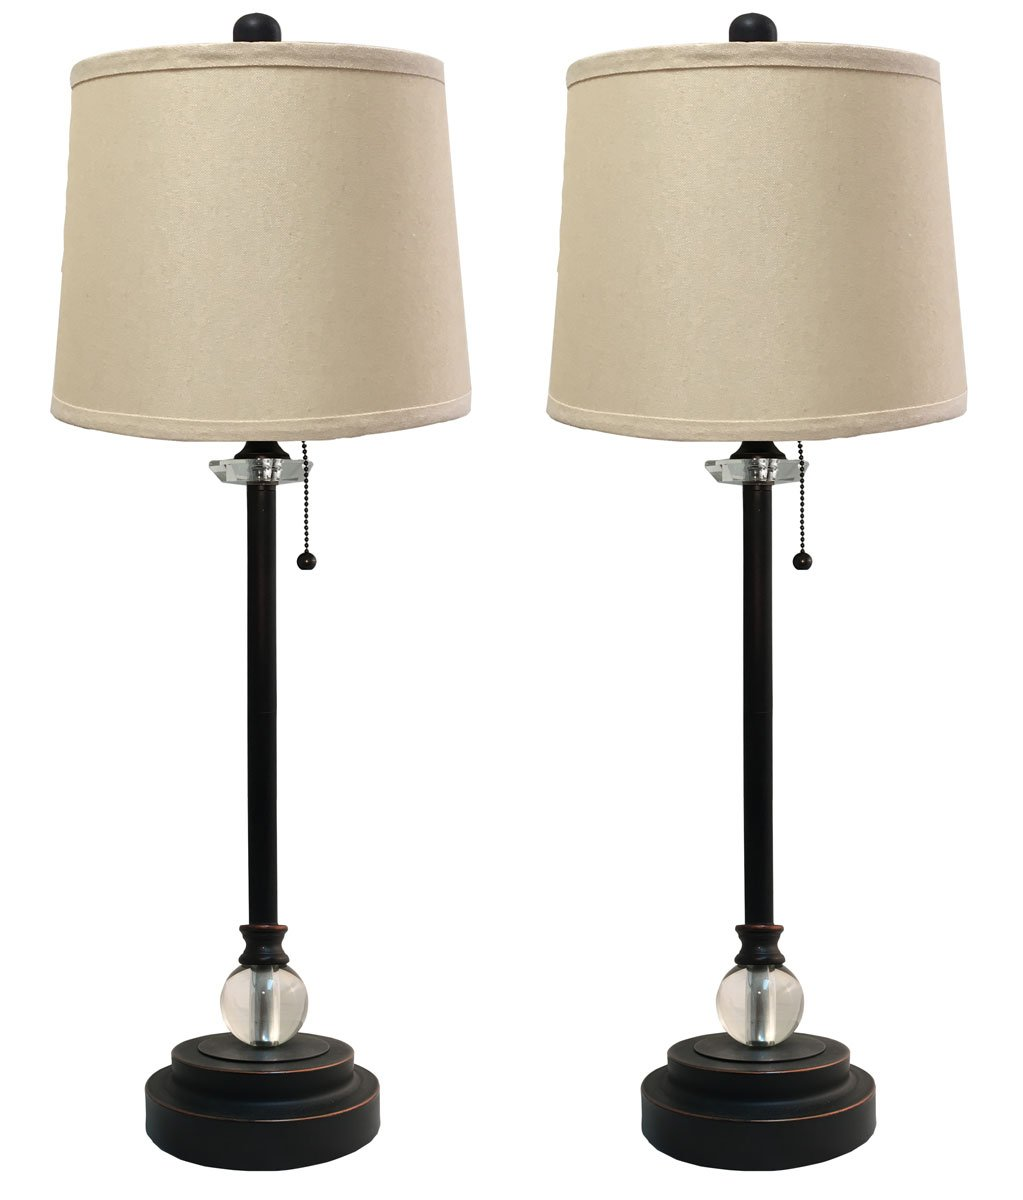 Royal Designs LS-1001ORB-2 Buffet Lamps in Oil Rub Linen Beige Hardback Shades, 27'' Tall, Bronze, 2 Pack